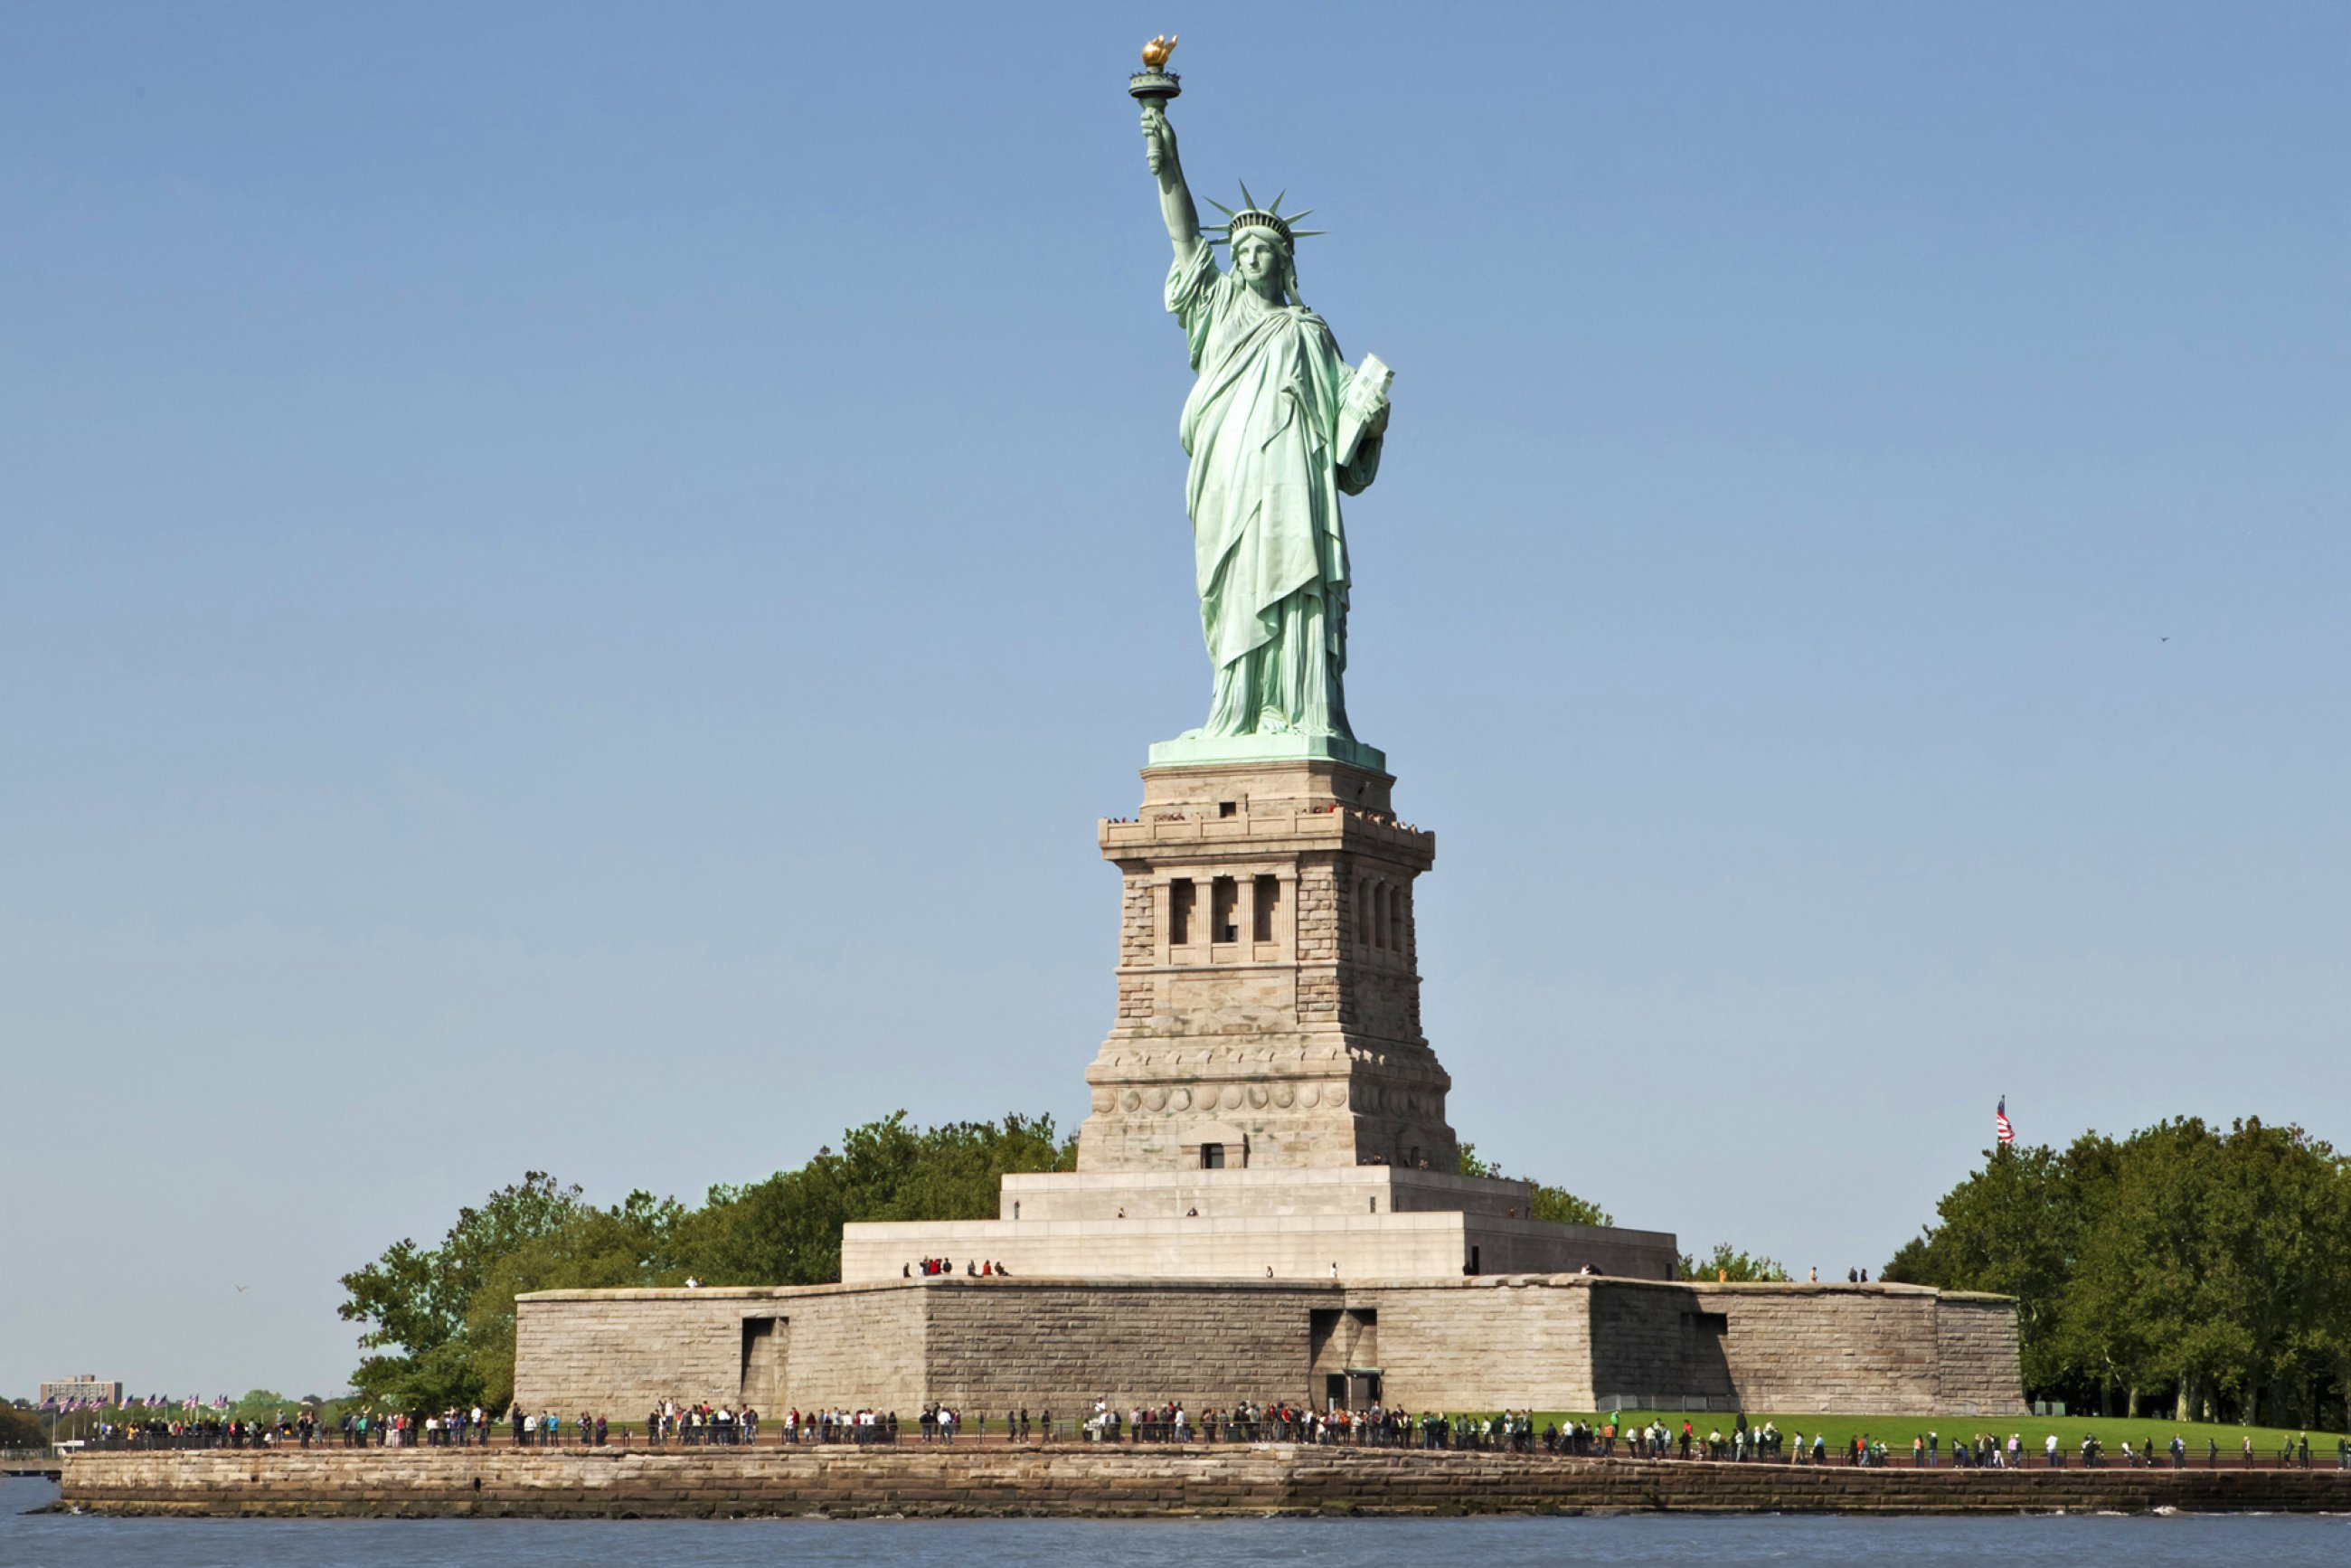 https://bubo.sk/uploads/galleries/5003/ny-statueofliberty-marleywhite-6467e.jpg